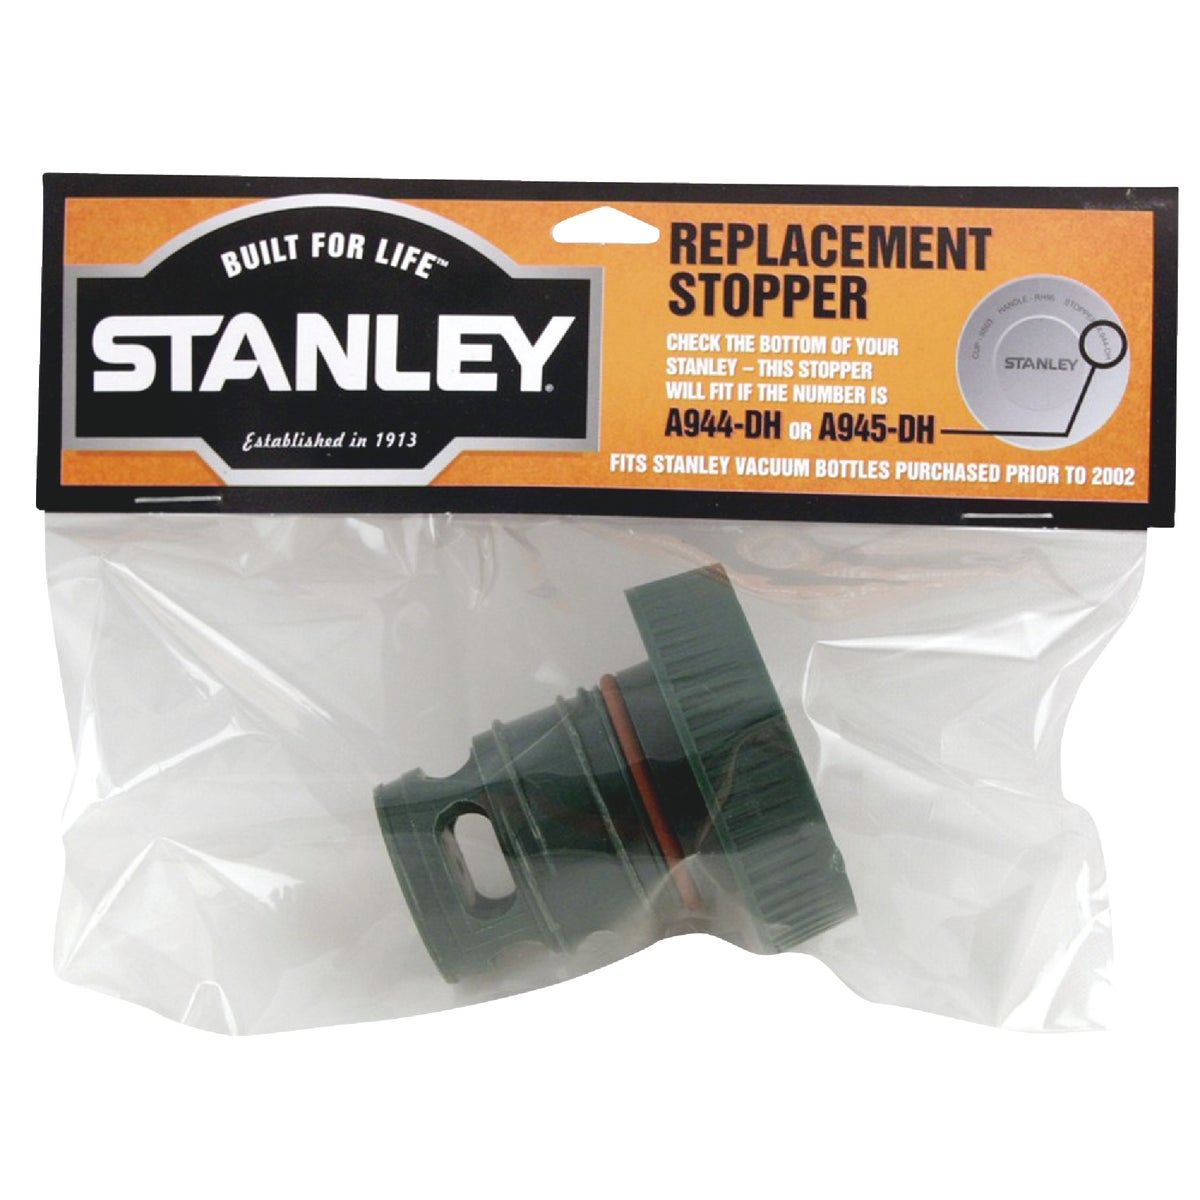 STANLEY BOTTLE STOPPER